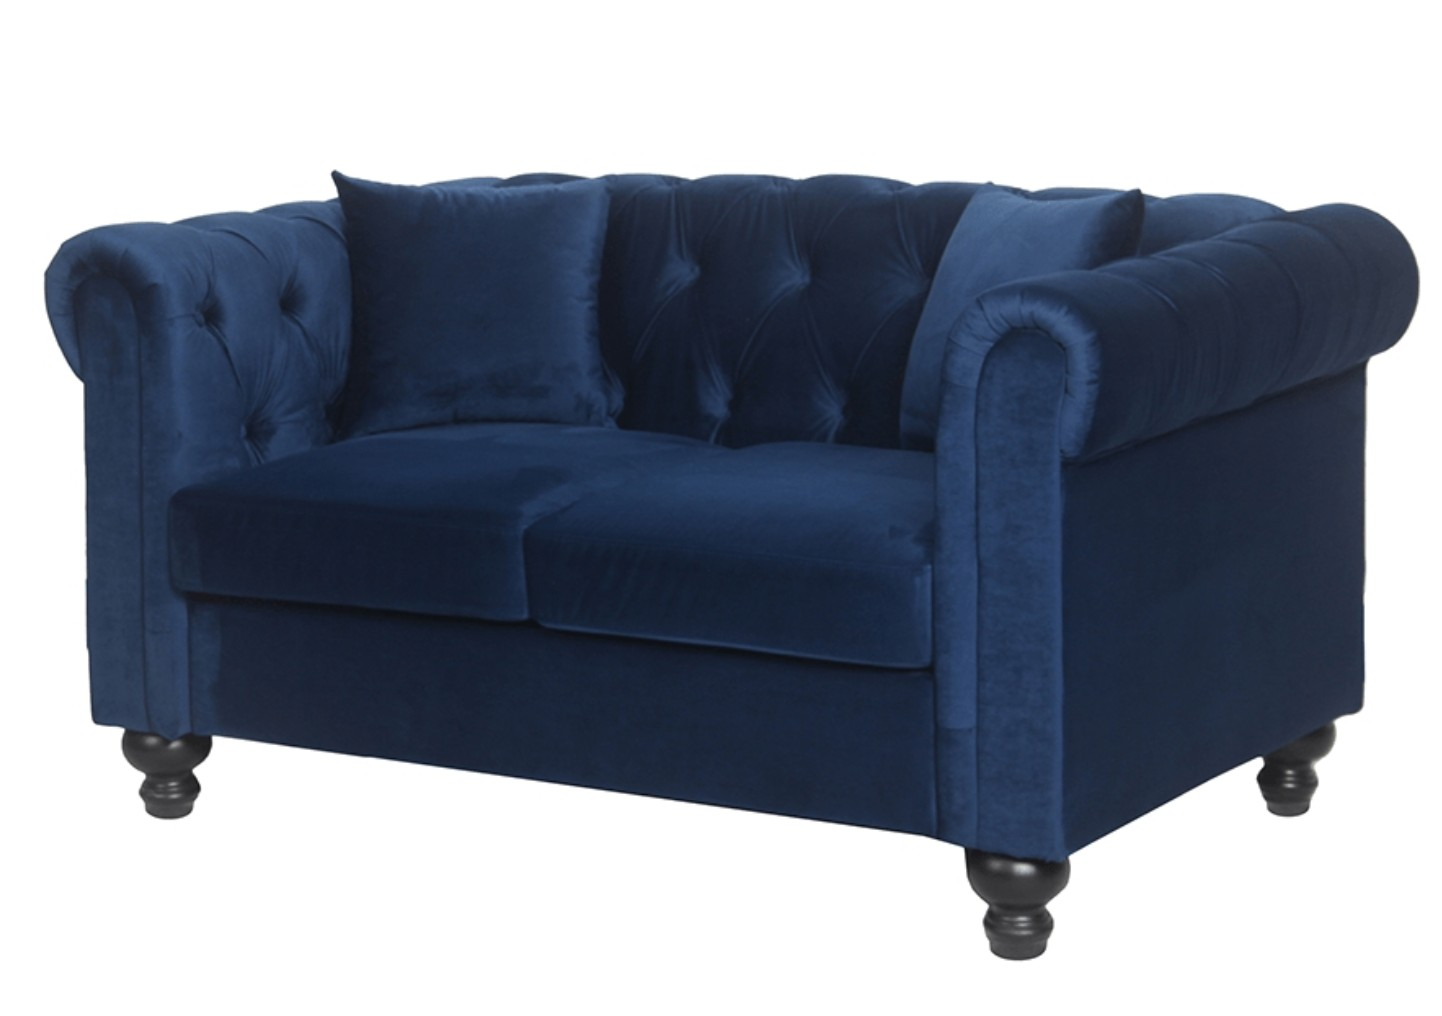 Canapé Chesterfield 2 Places Canapé Chesterfield 2 Places Velours Bleu British